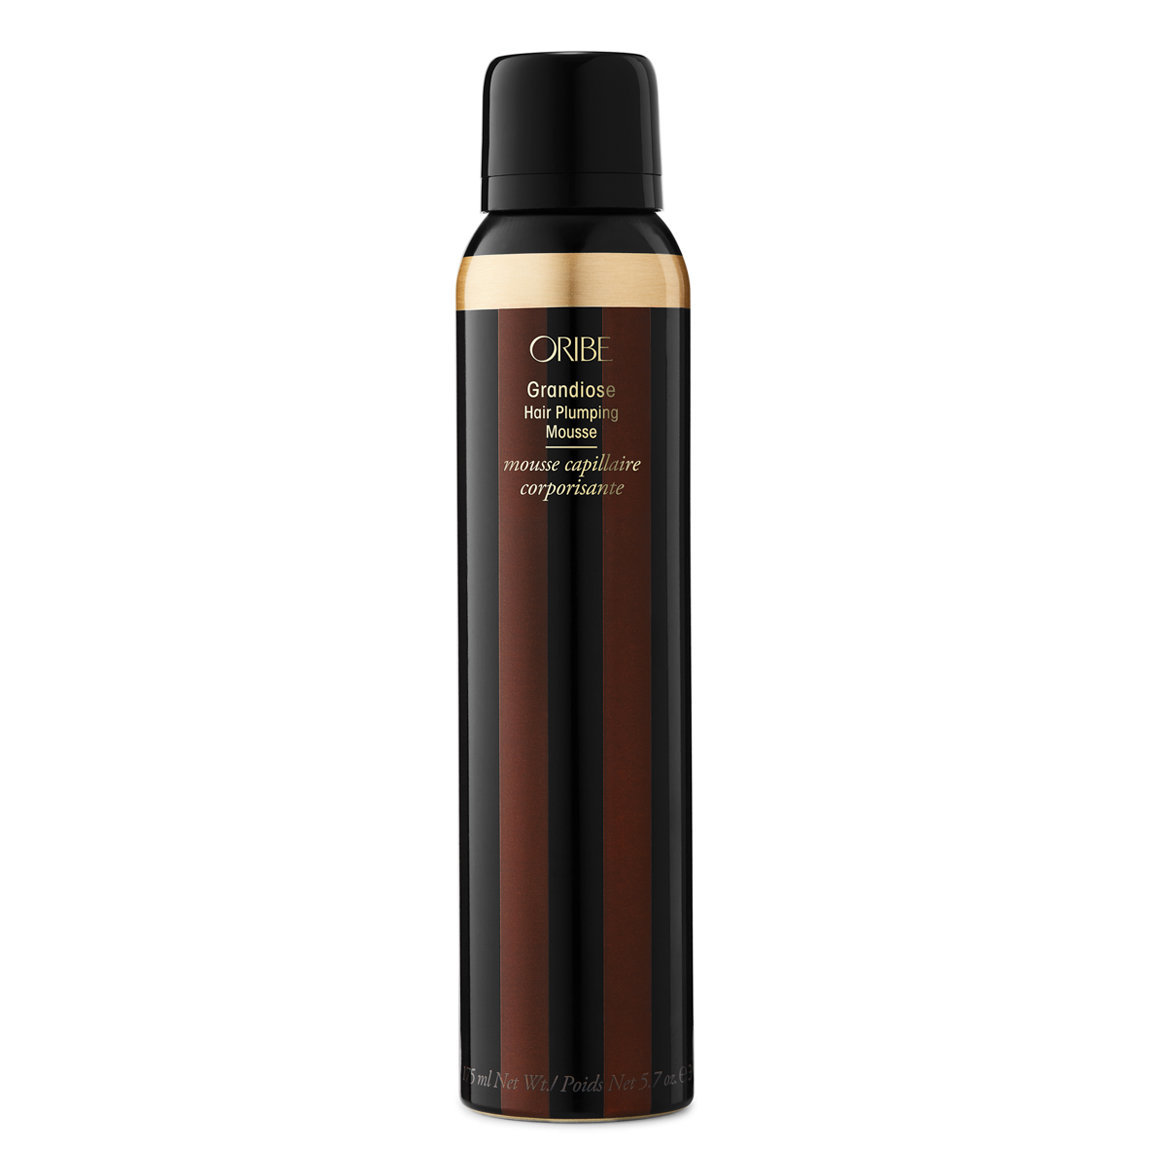 Oribe Grandiose Hair Plumping Mousse 5.7 oz product swatch.